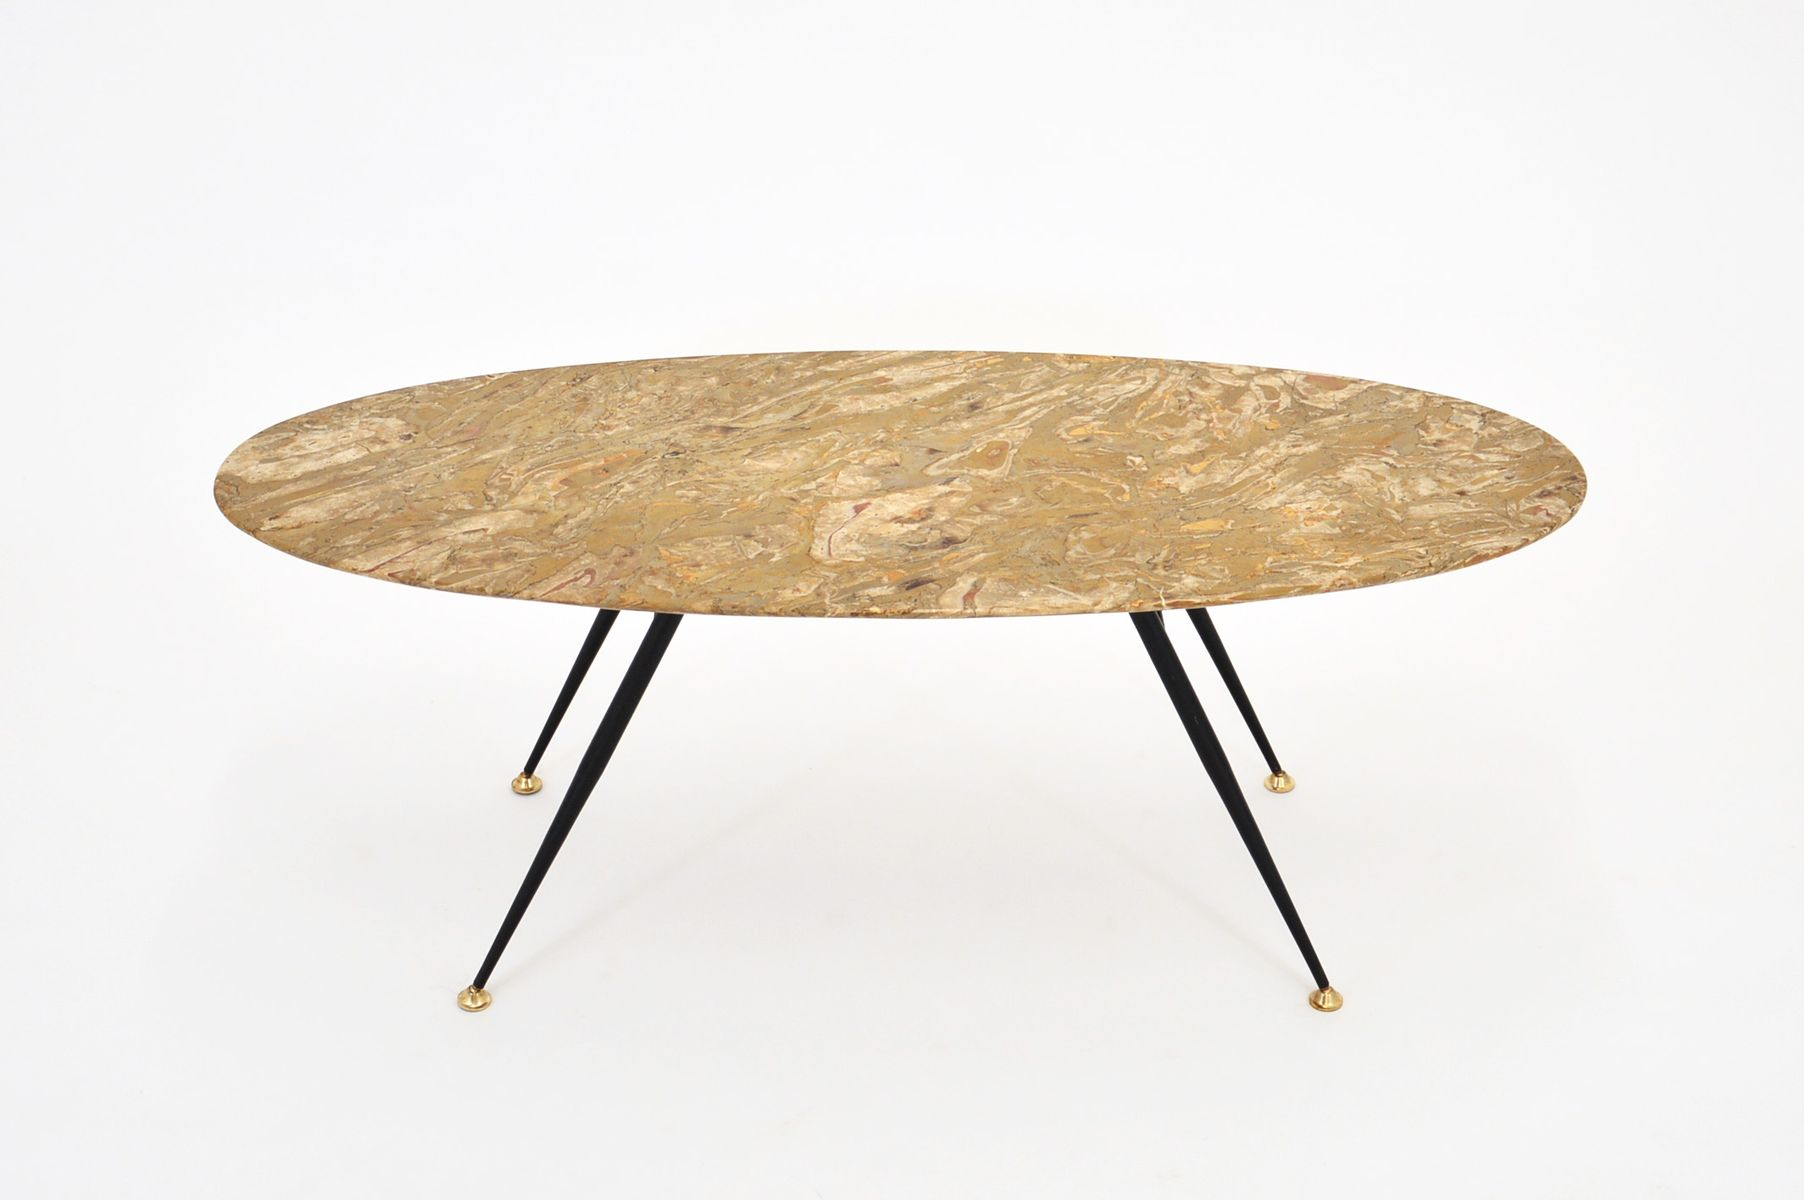 Italian stone metal coffee table 1950s for sale at pamono for Metal and stone coffee table